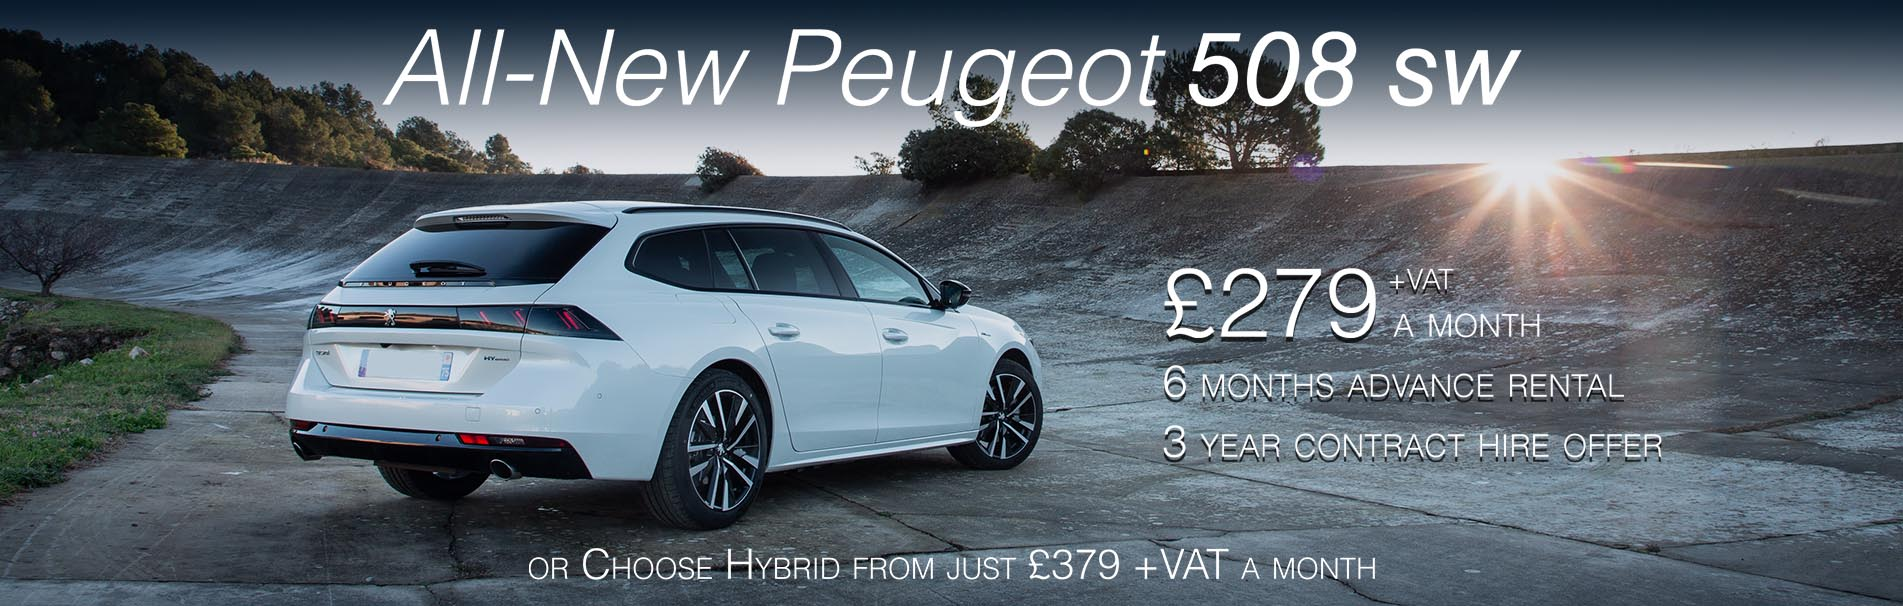 peugeot-all-new-508-sw-contract-hire-offer-march-sli